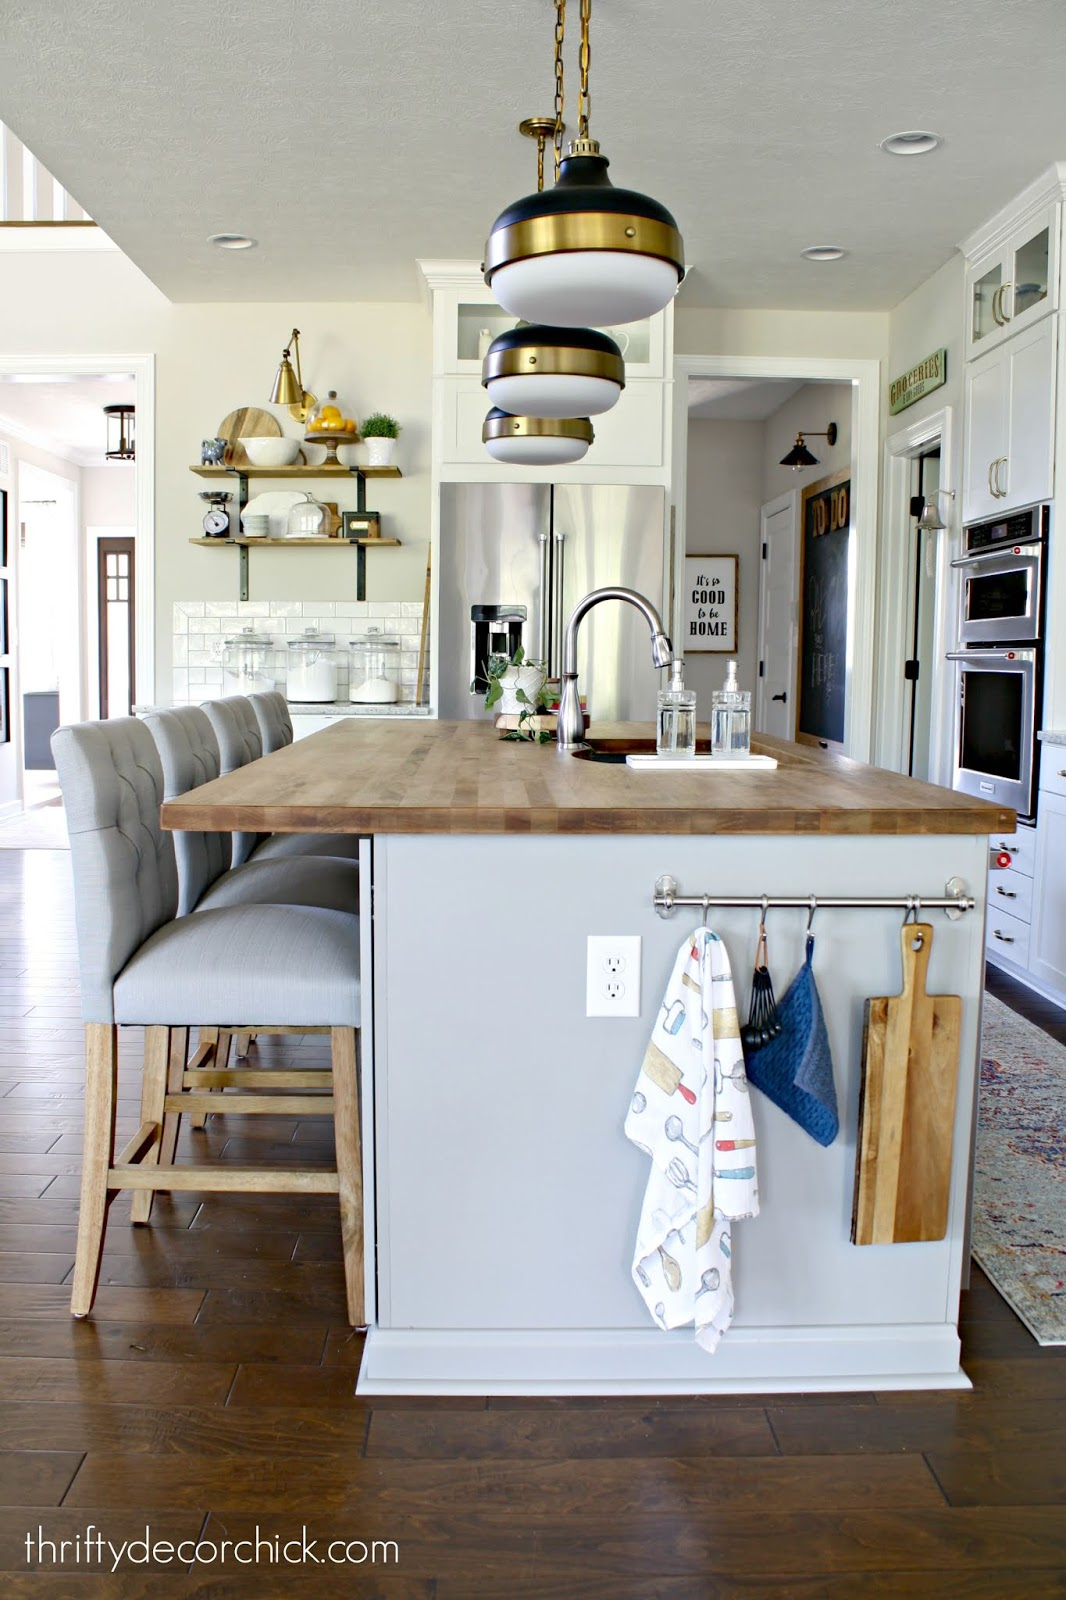 How to add character to plain kitchen island